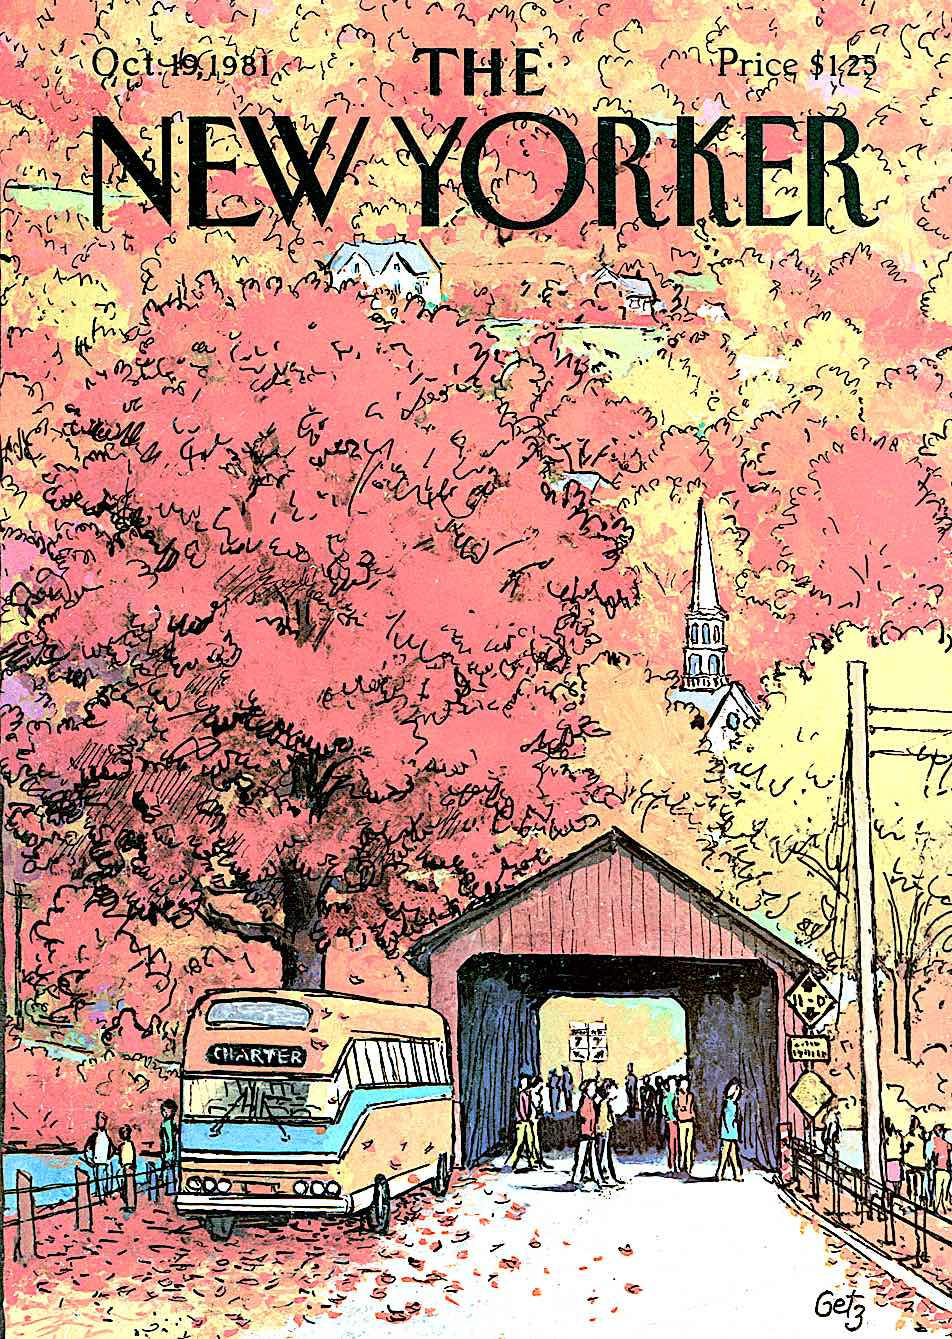 Arthur Getz for The New Yorker Magazine October 19 1981, a covered bridge in Autumn